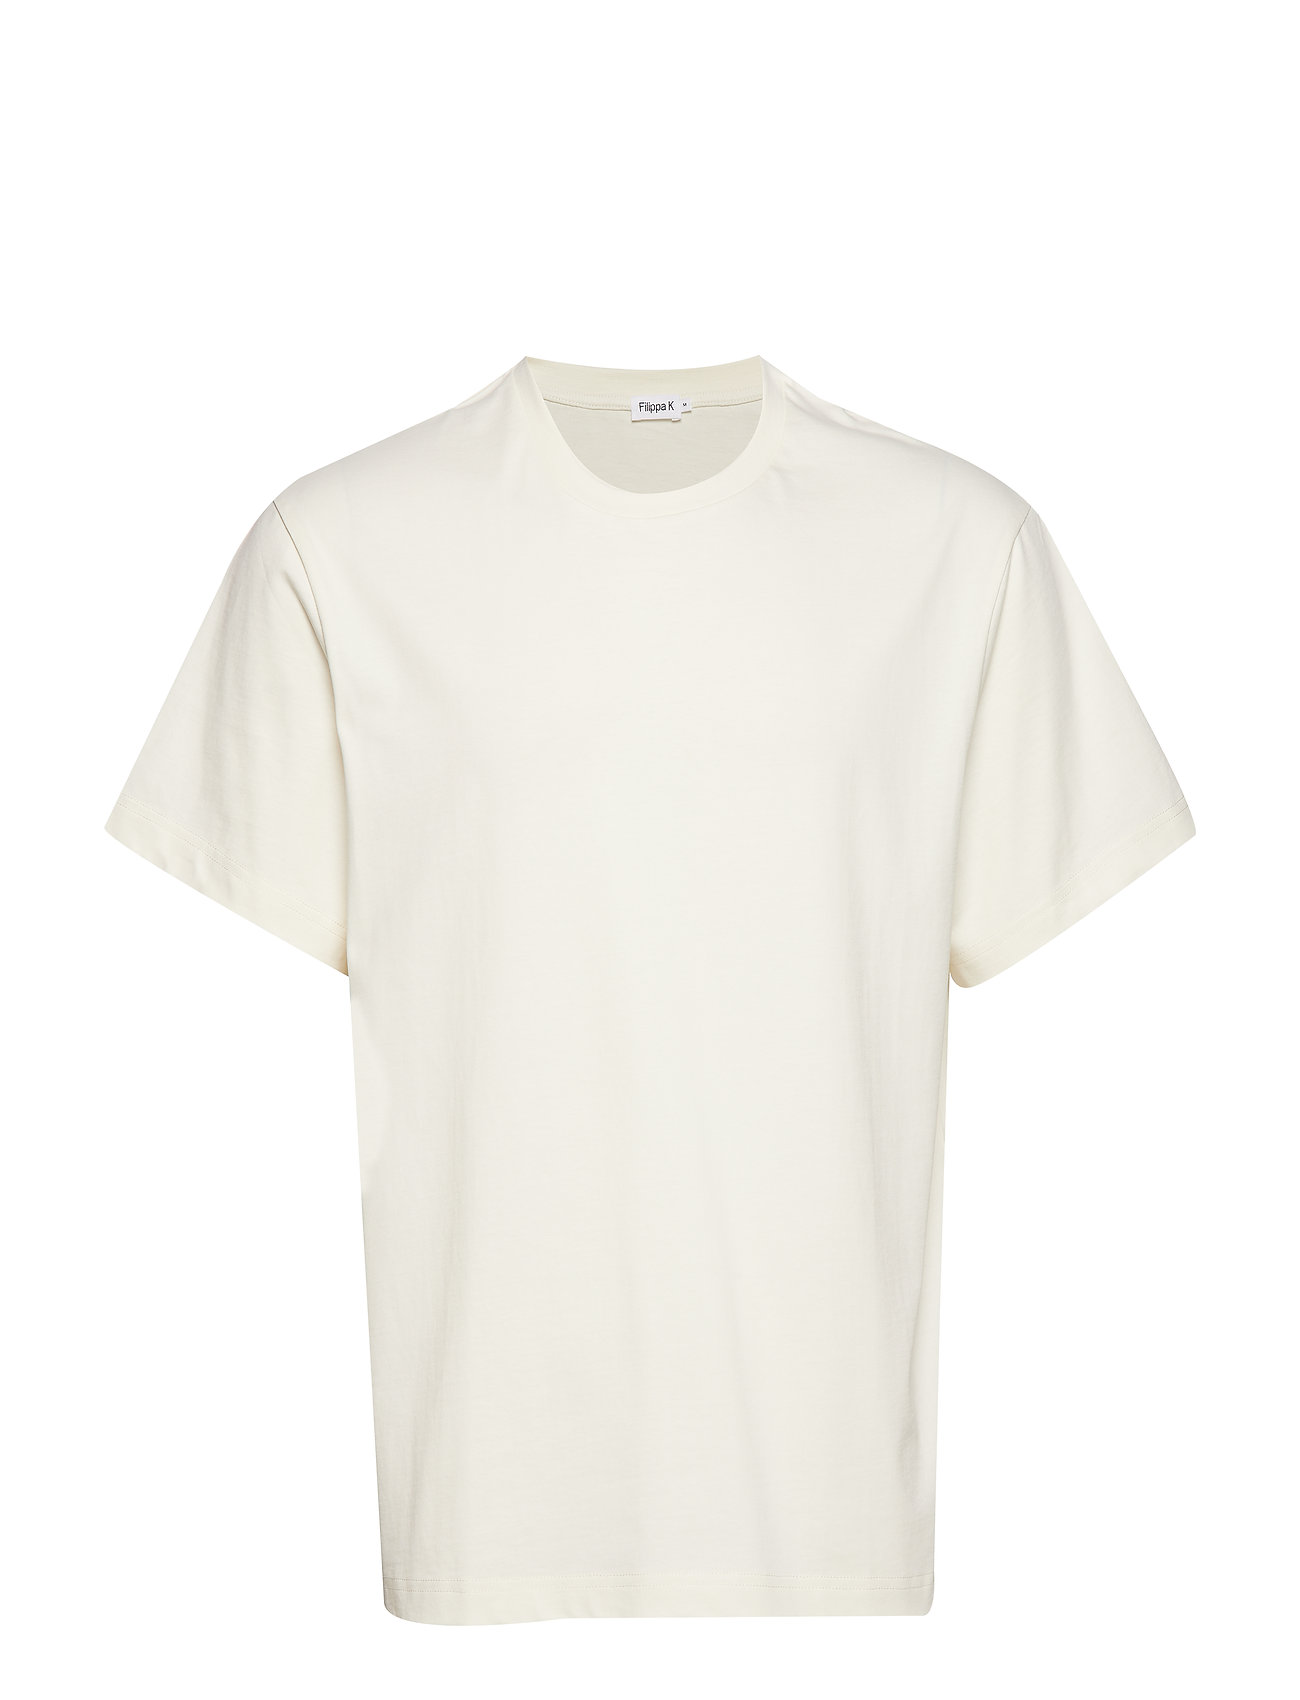 Filippa K M. Japanese Oversize Tee - OFF-WHITE